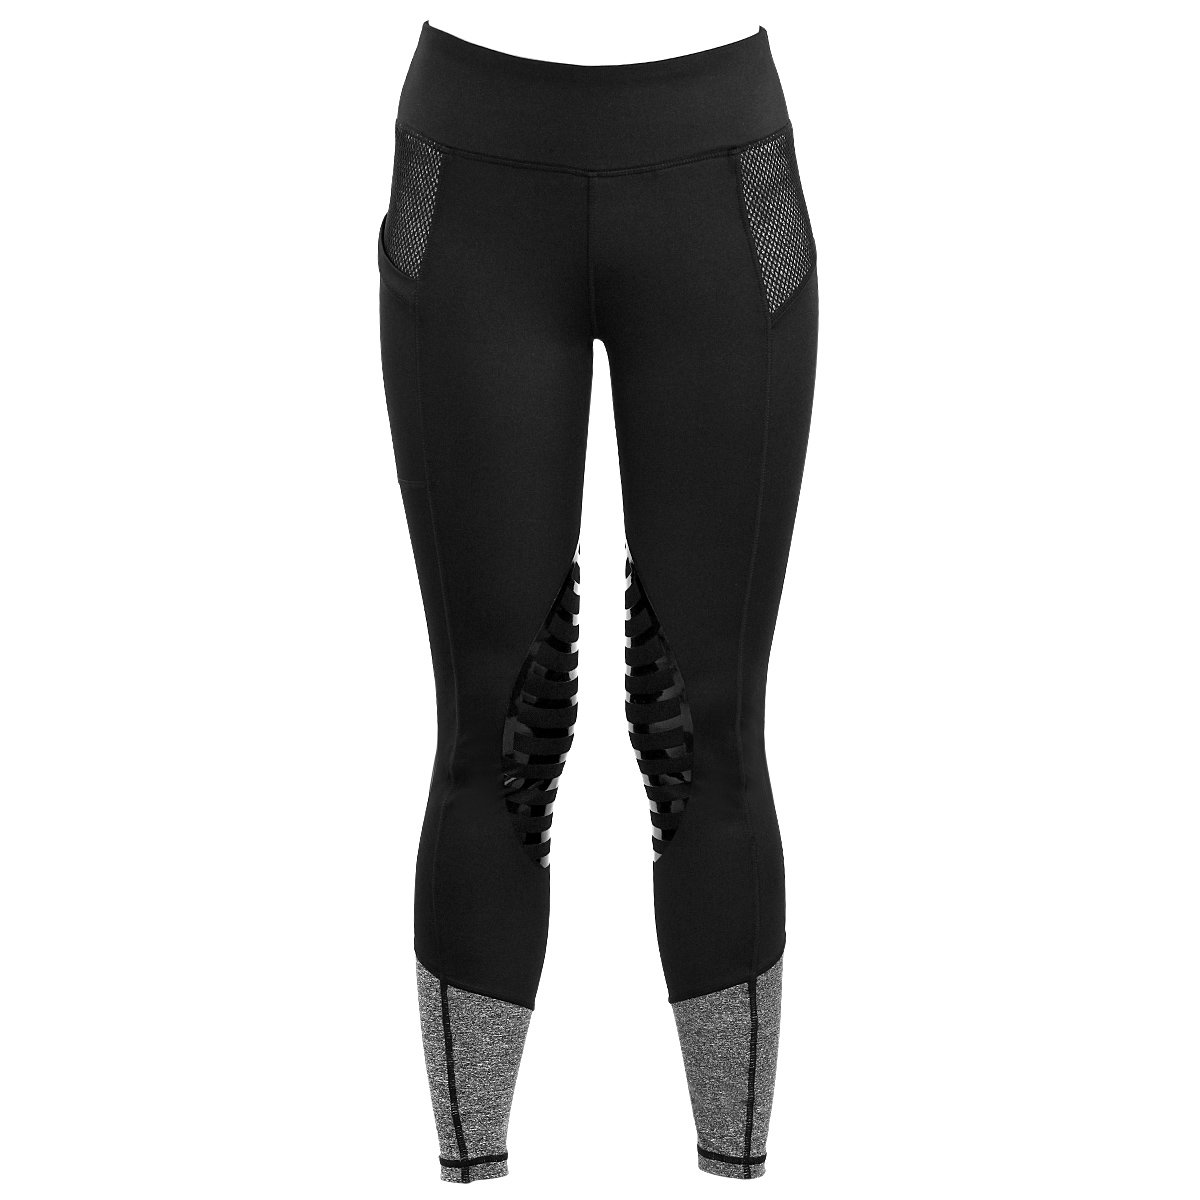 HR Farm Women's Silicone Tights Horse Riding Gel Grip Pull On Leggings with Pocket (Black, L)